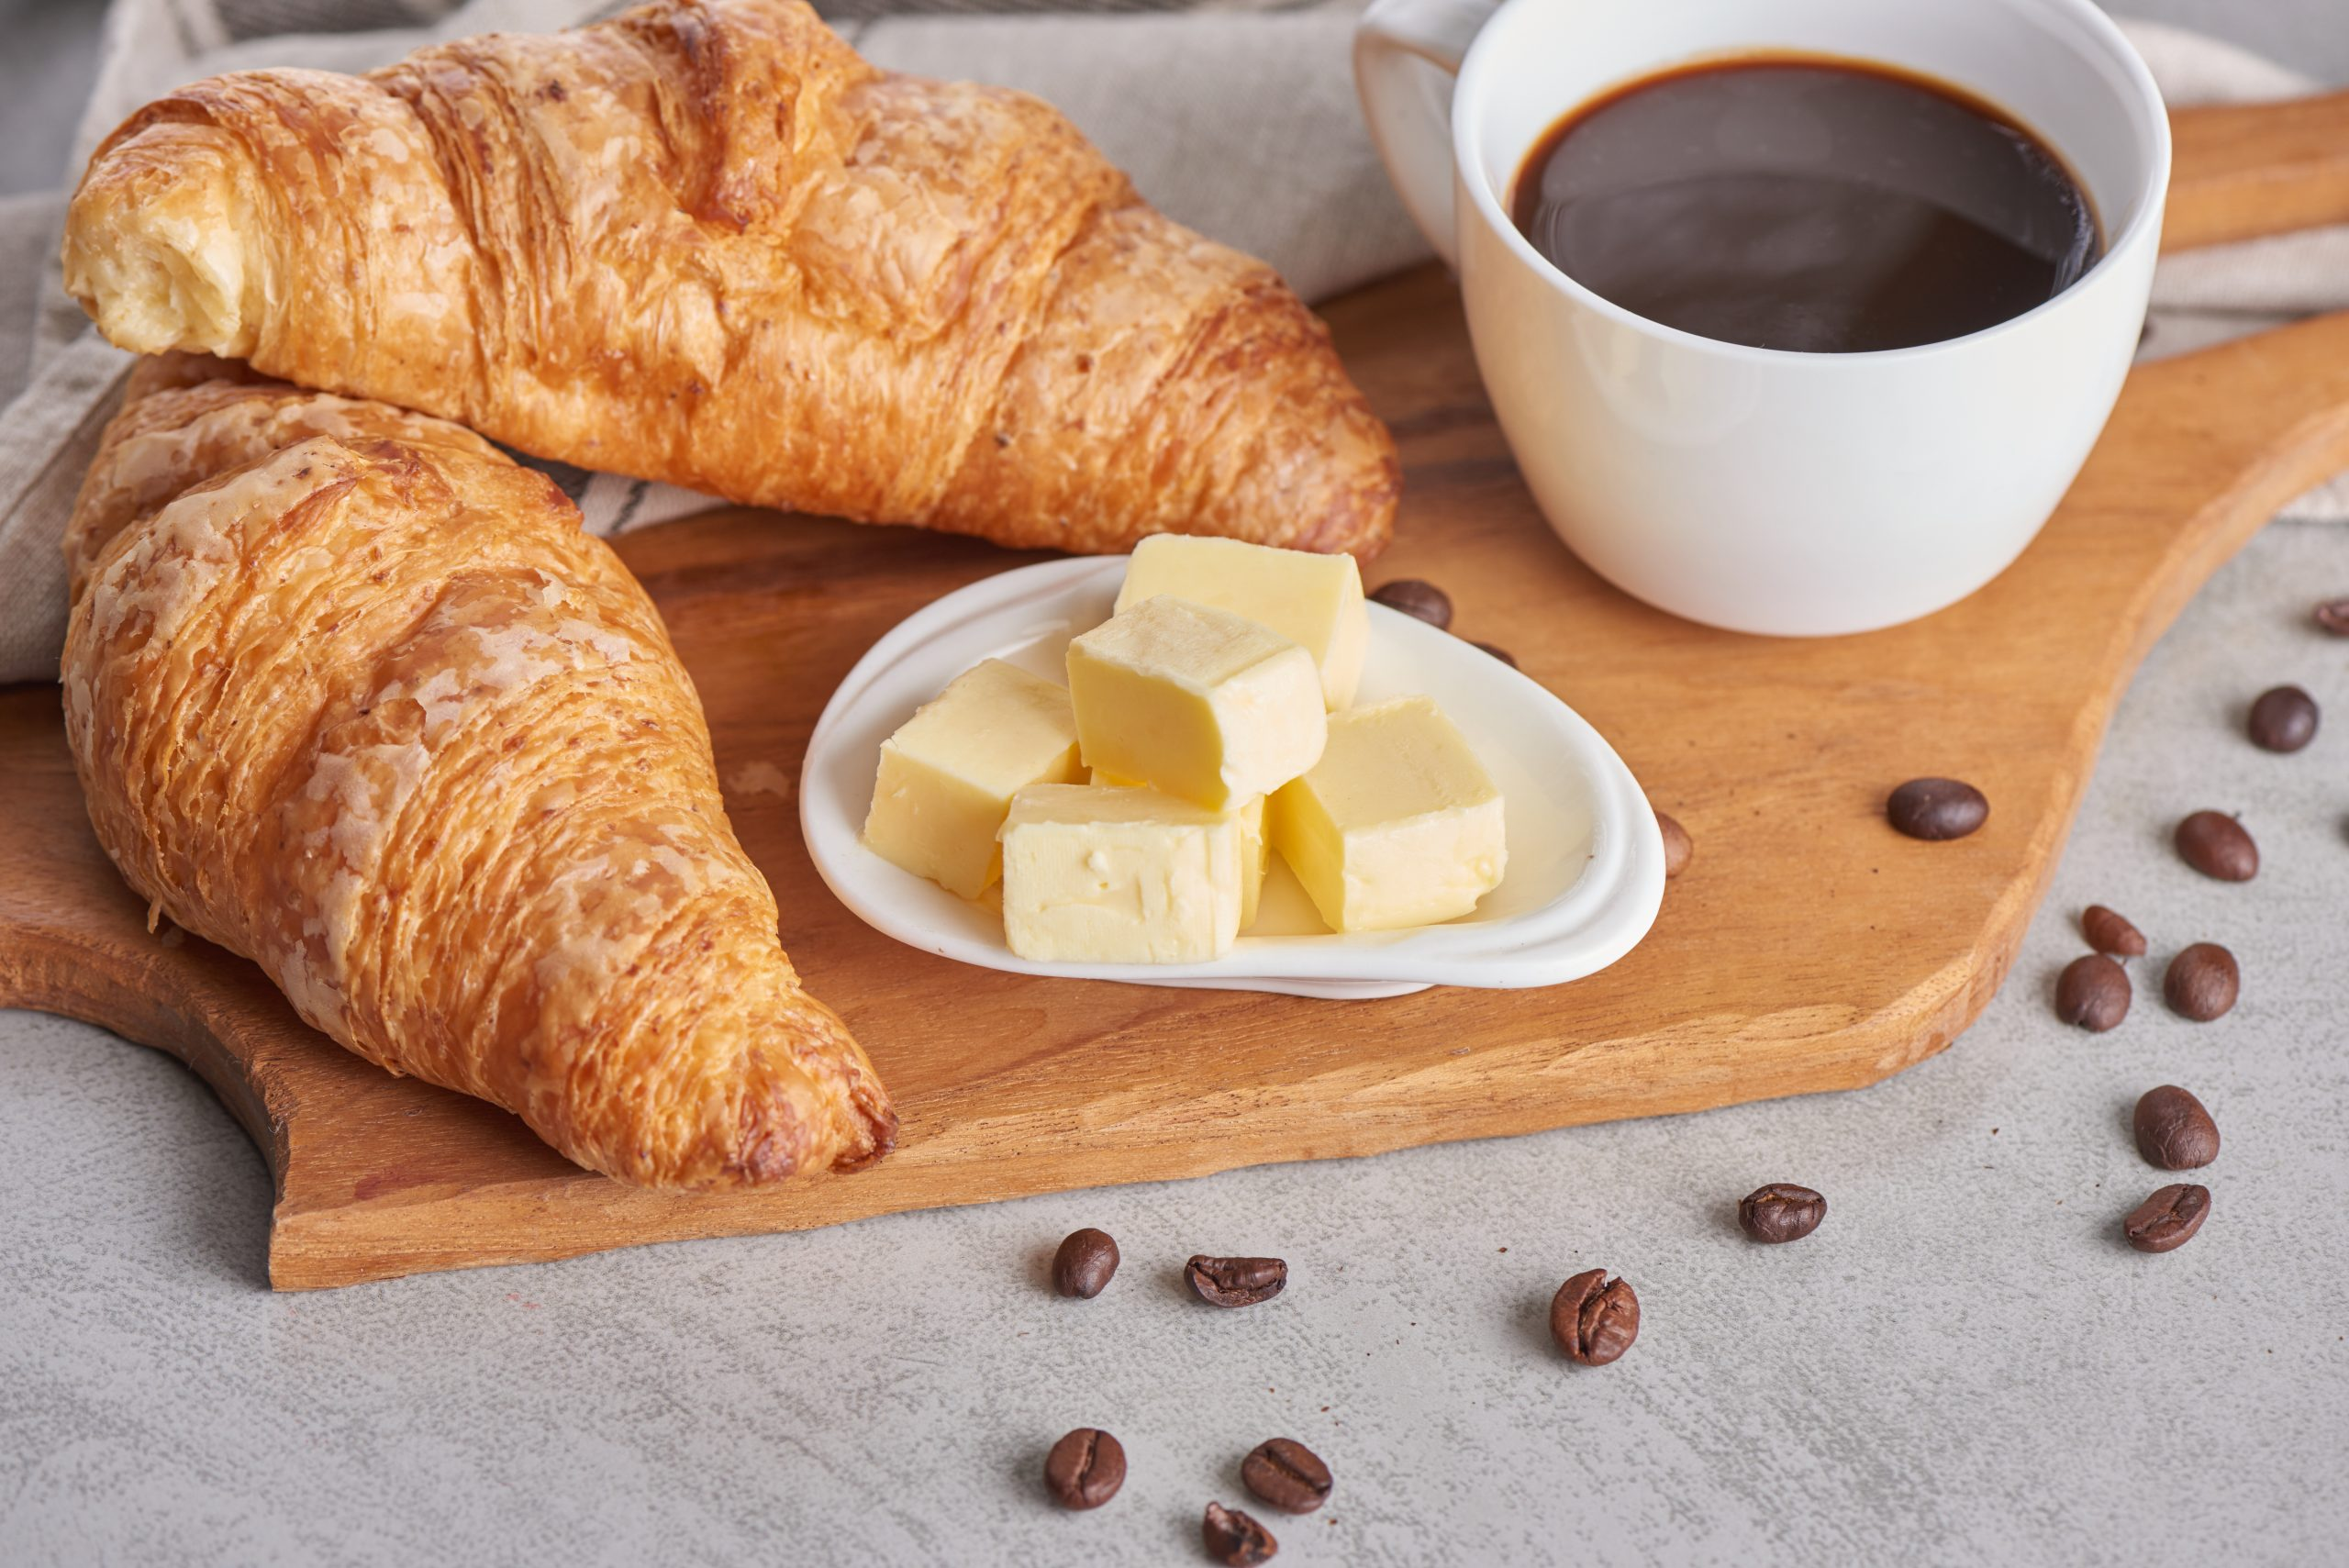 Delicious breakfast with fresh croissants and coffee served with